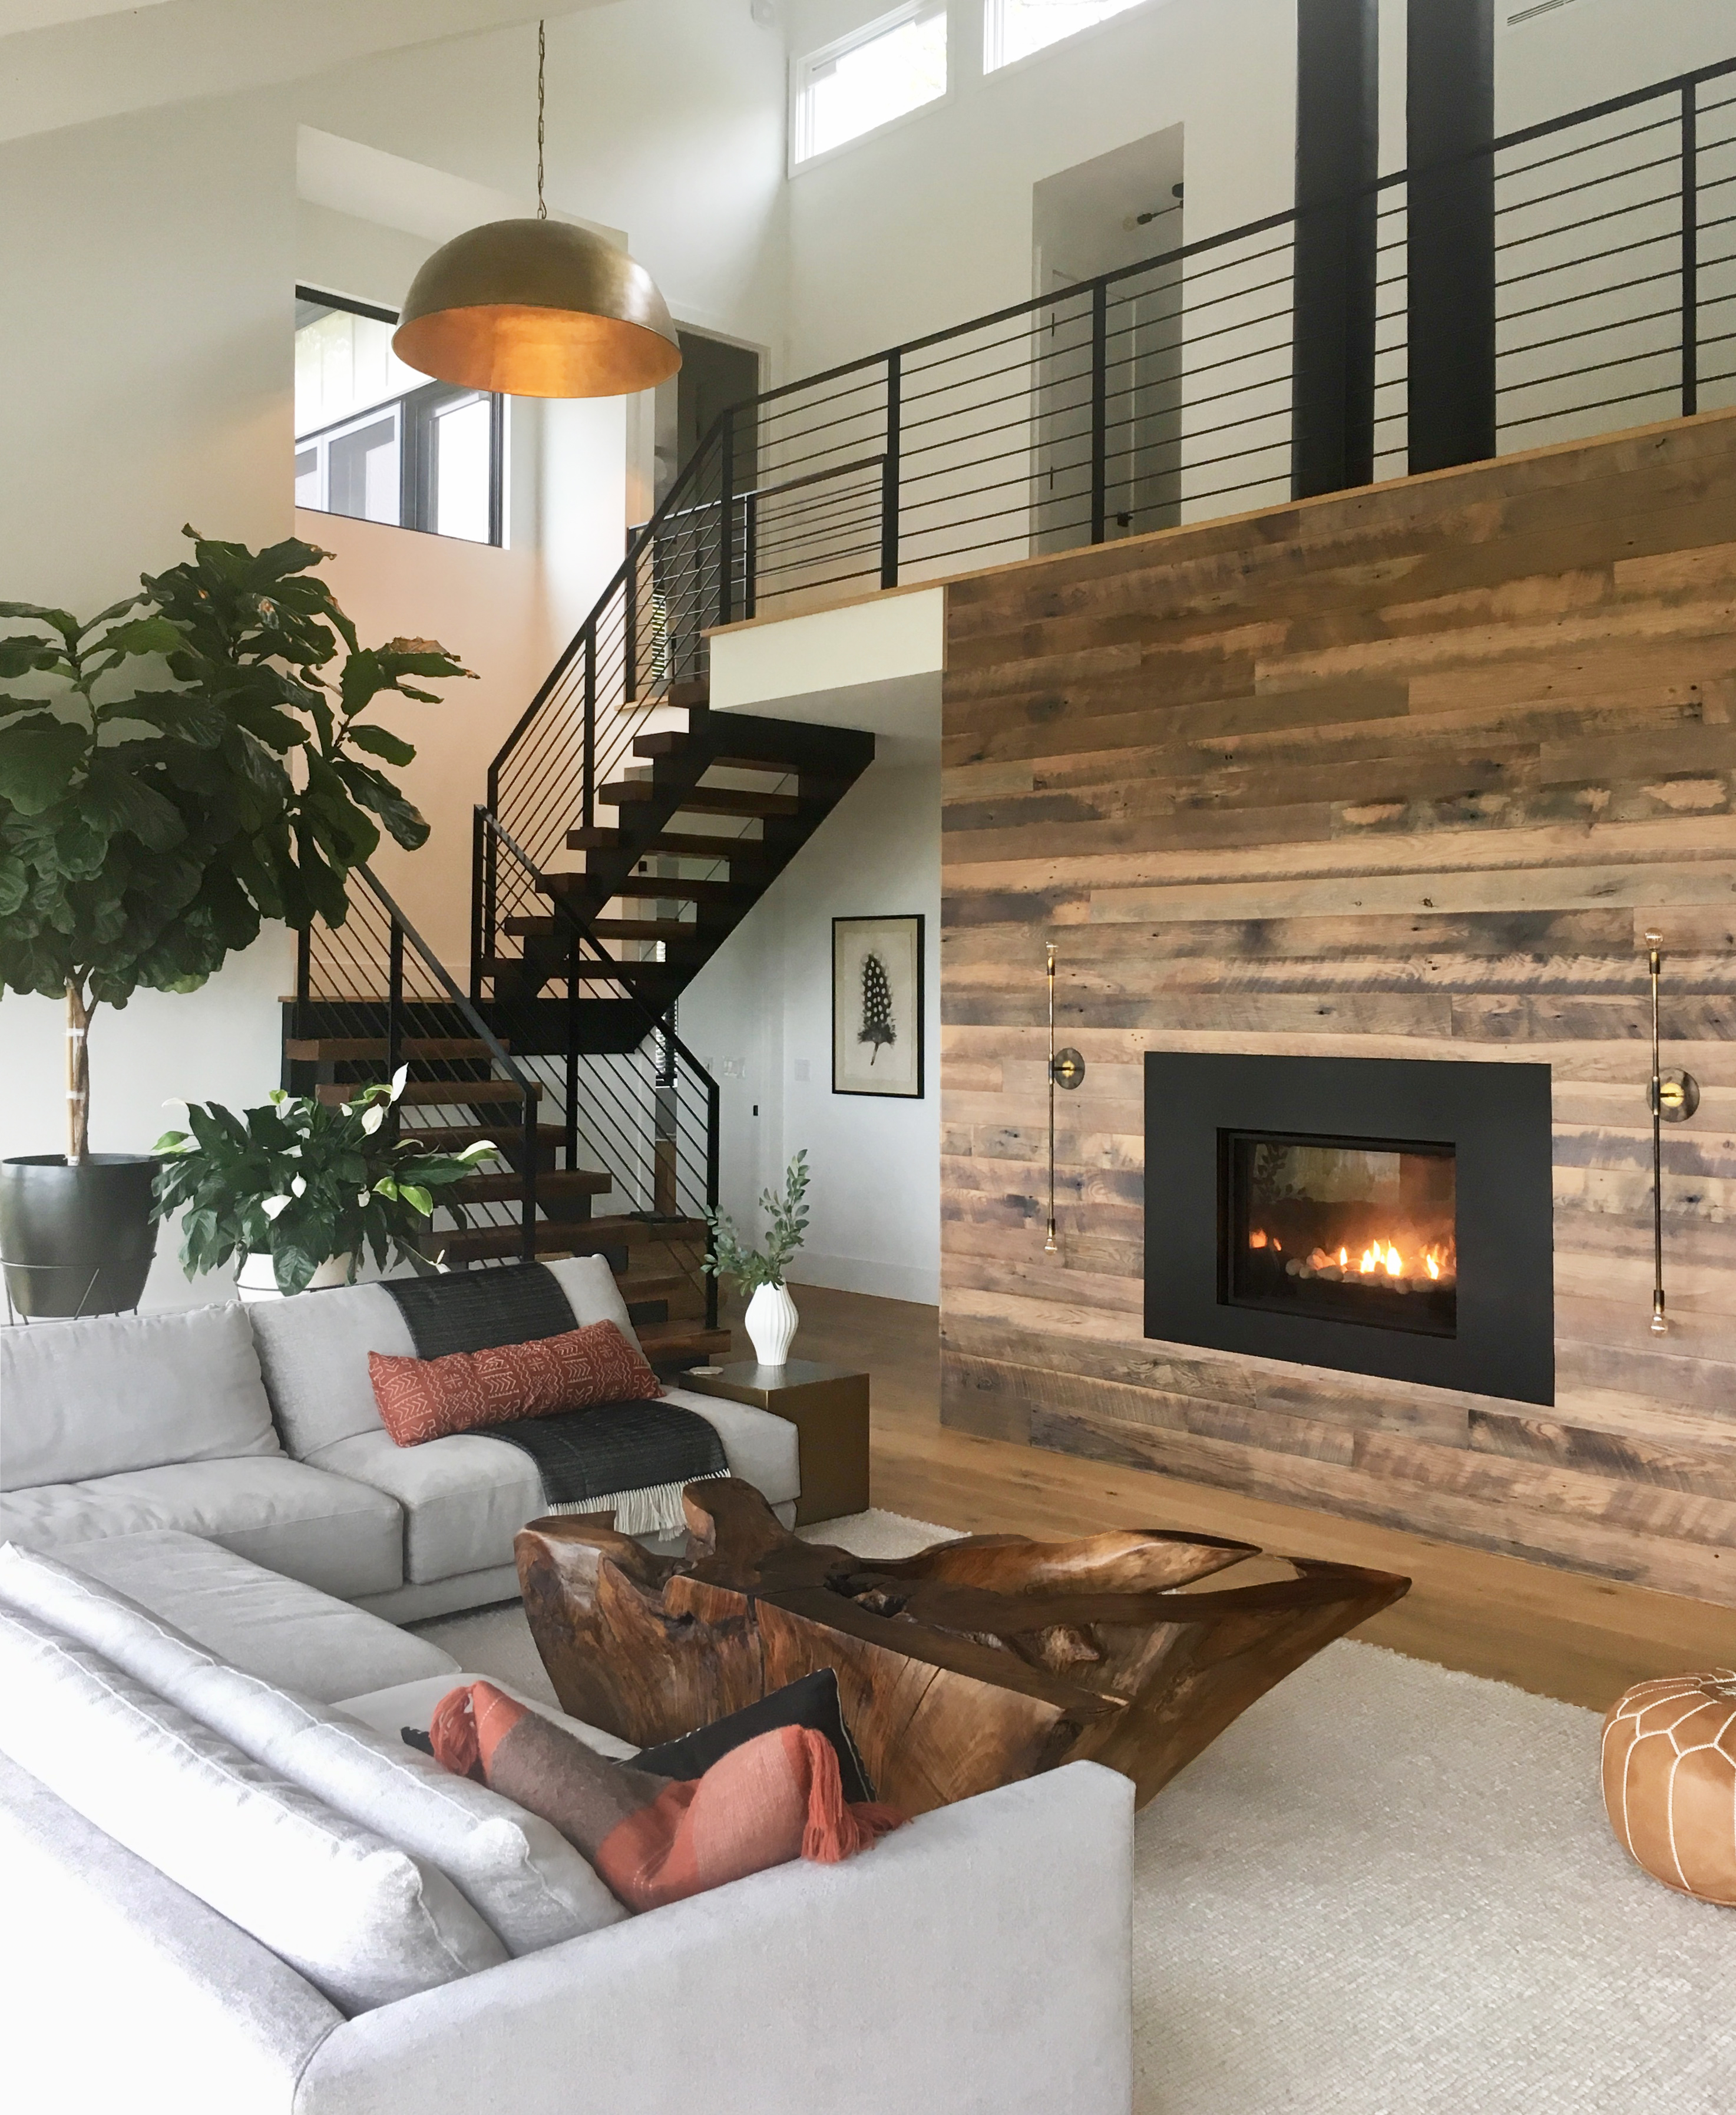 PSA: These Rustic Living Room Ideas Make a Strong Case for Contemporary Country Living